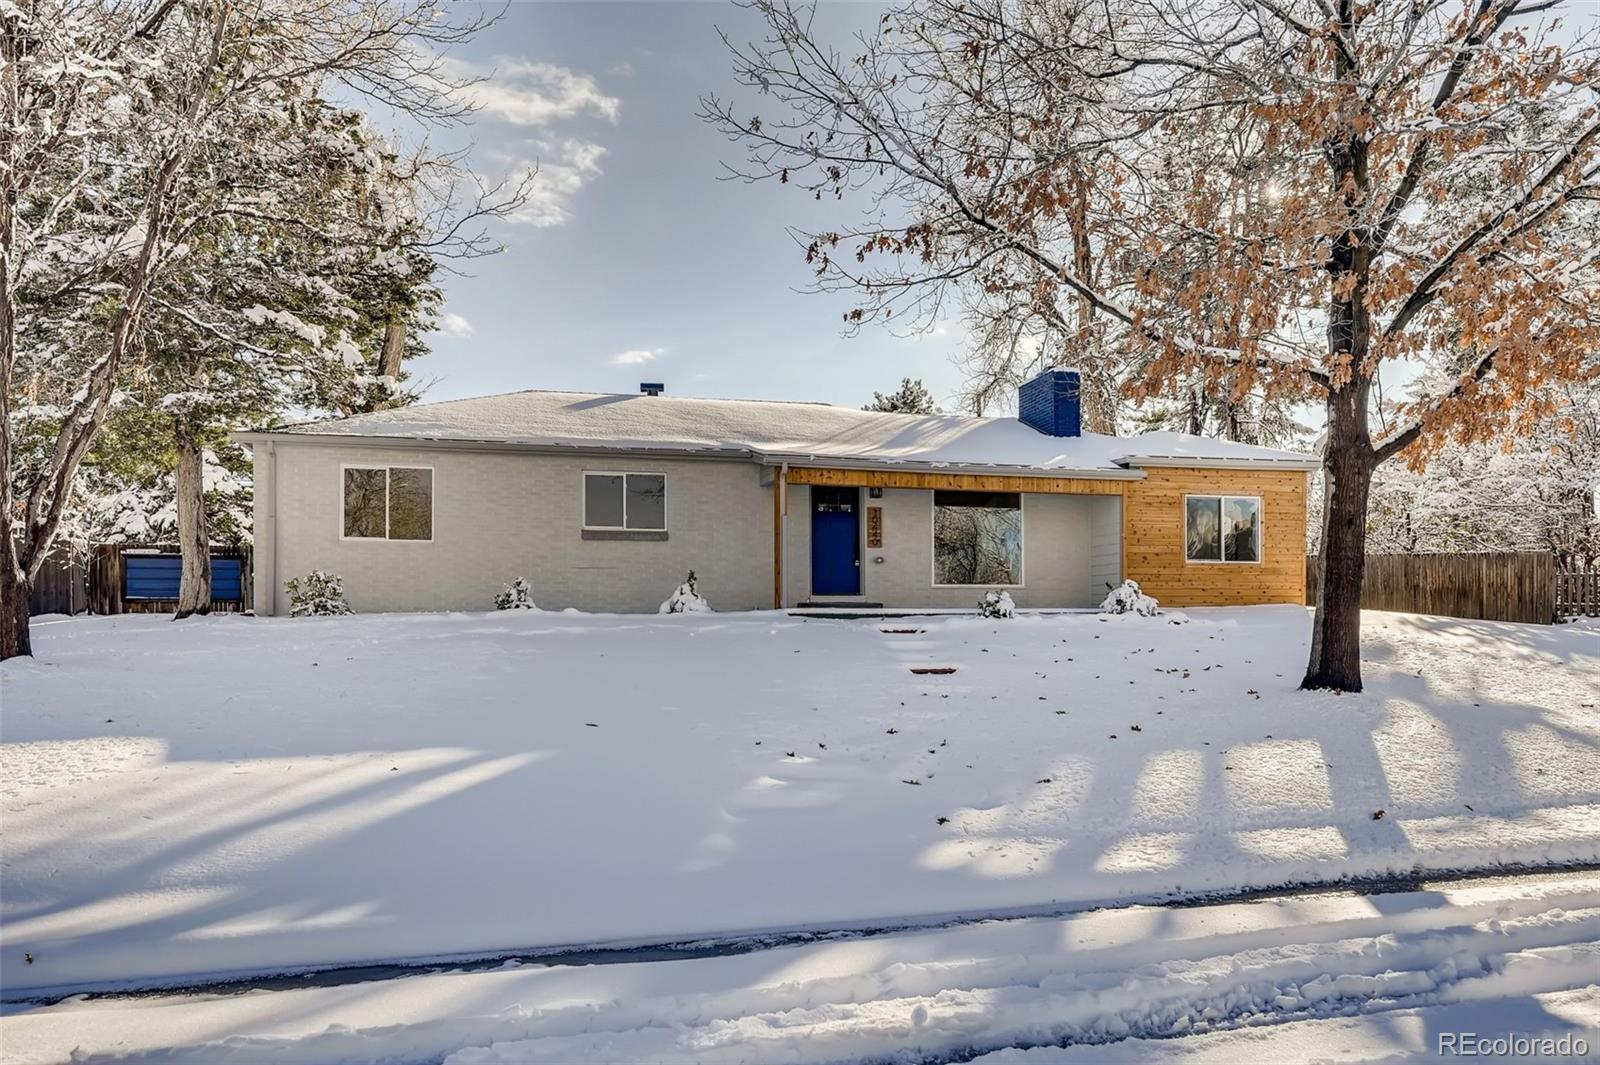 10440 W 13th Place W, Lakewood, CO 80215 - #: 5588121